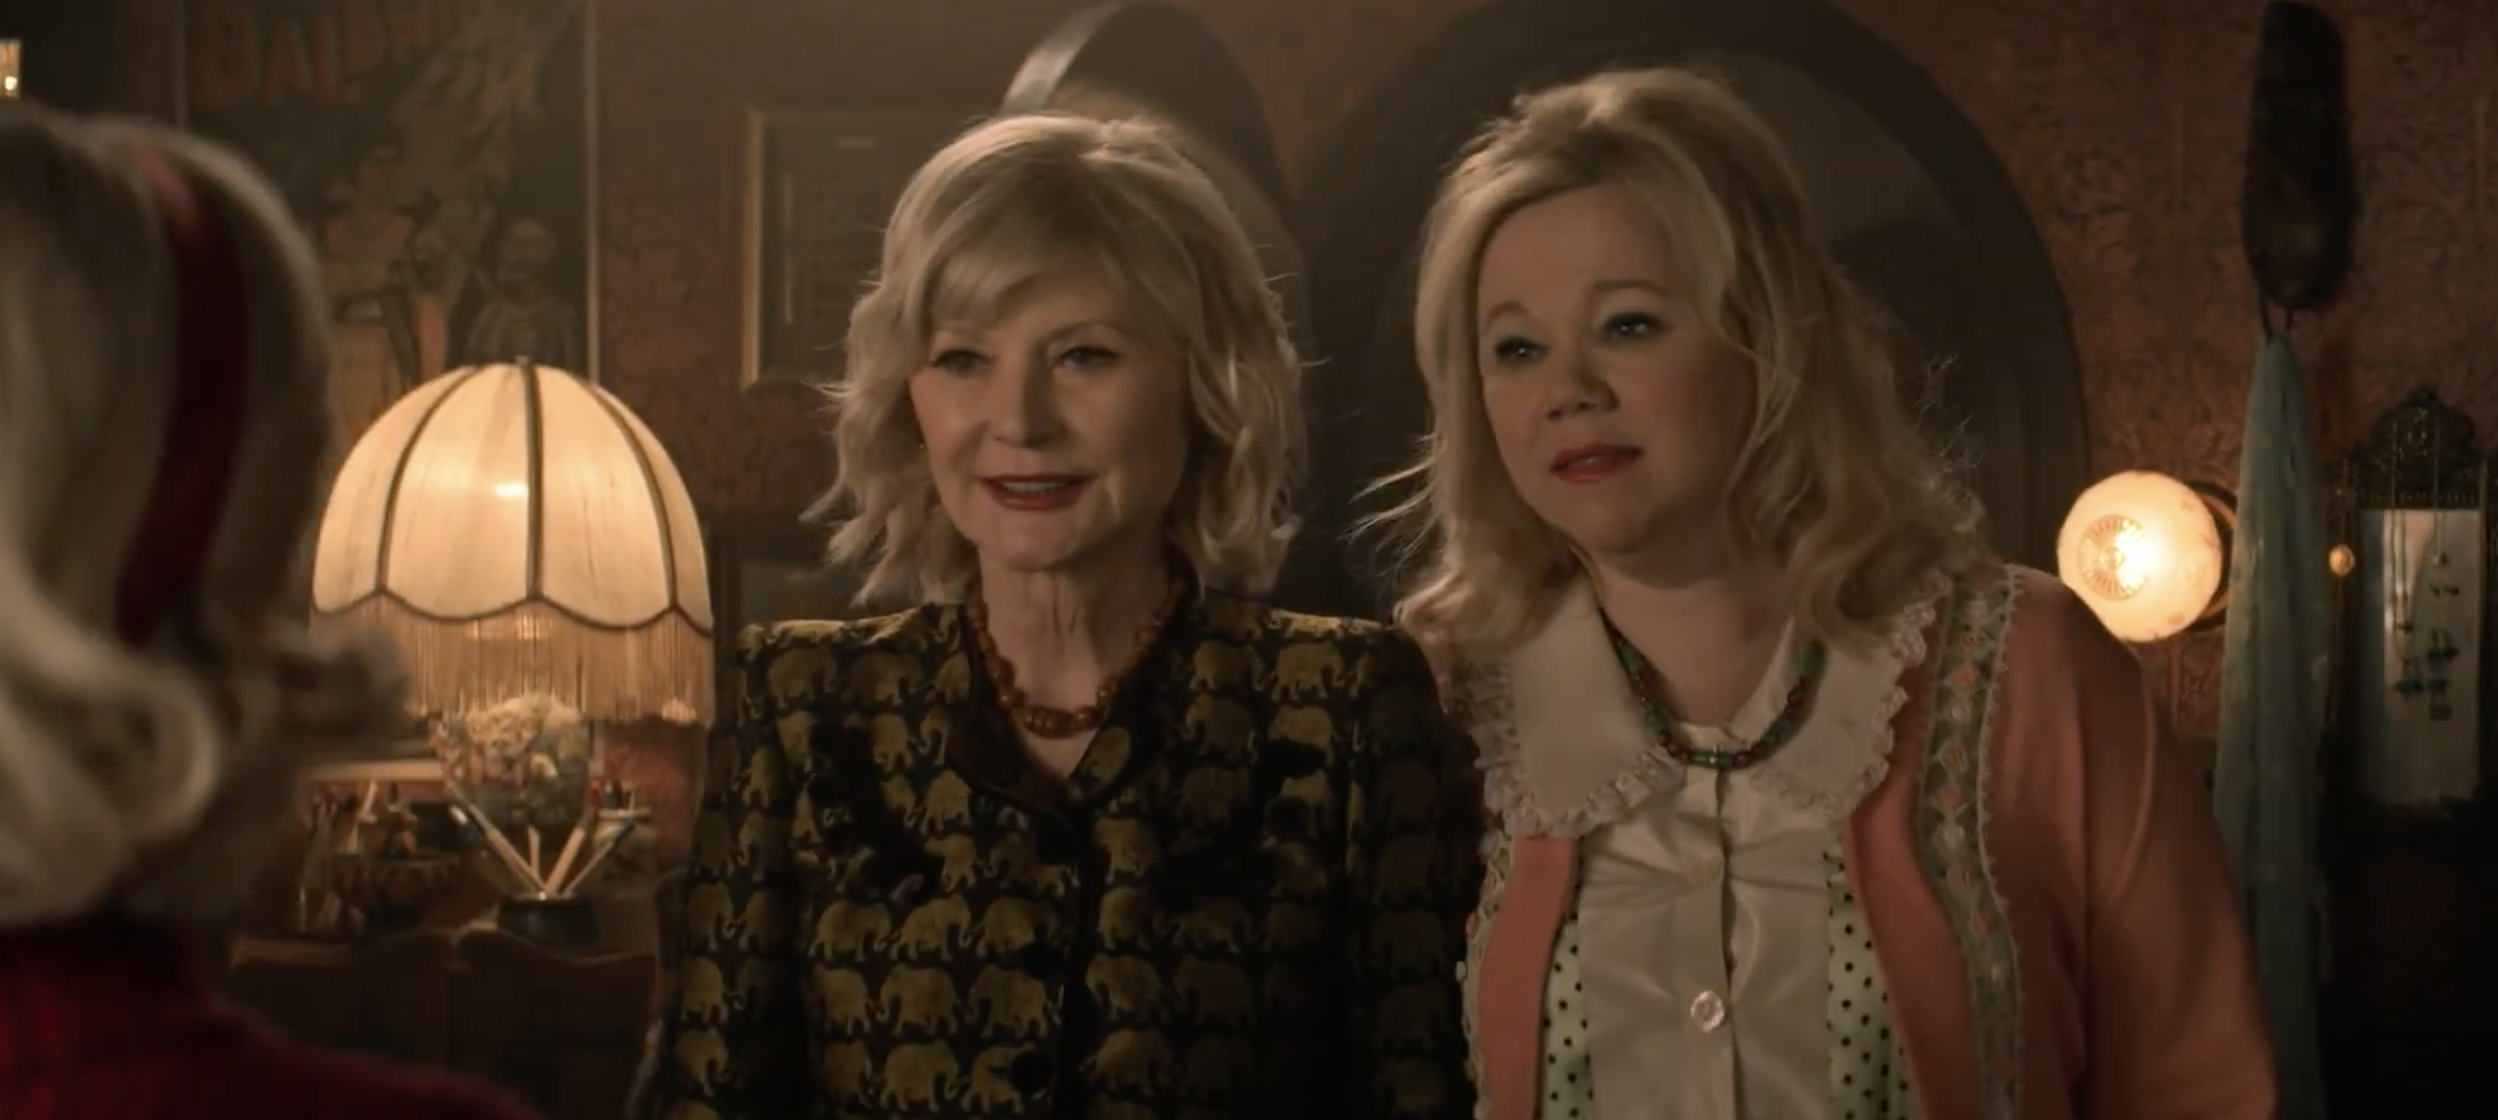 The Sabrina, the Teenage Witch aunts got a Netflix show crossover